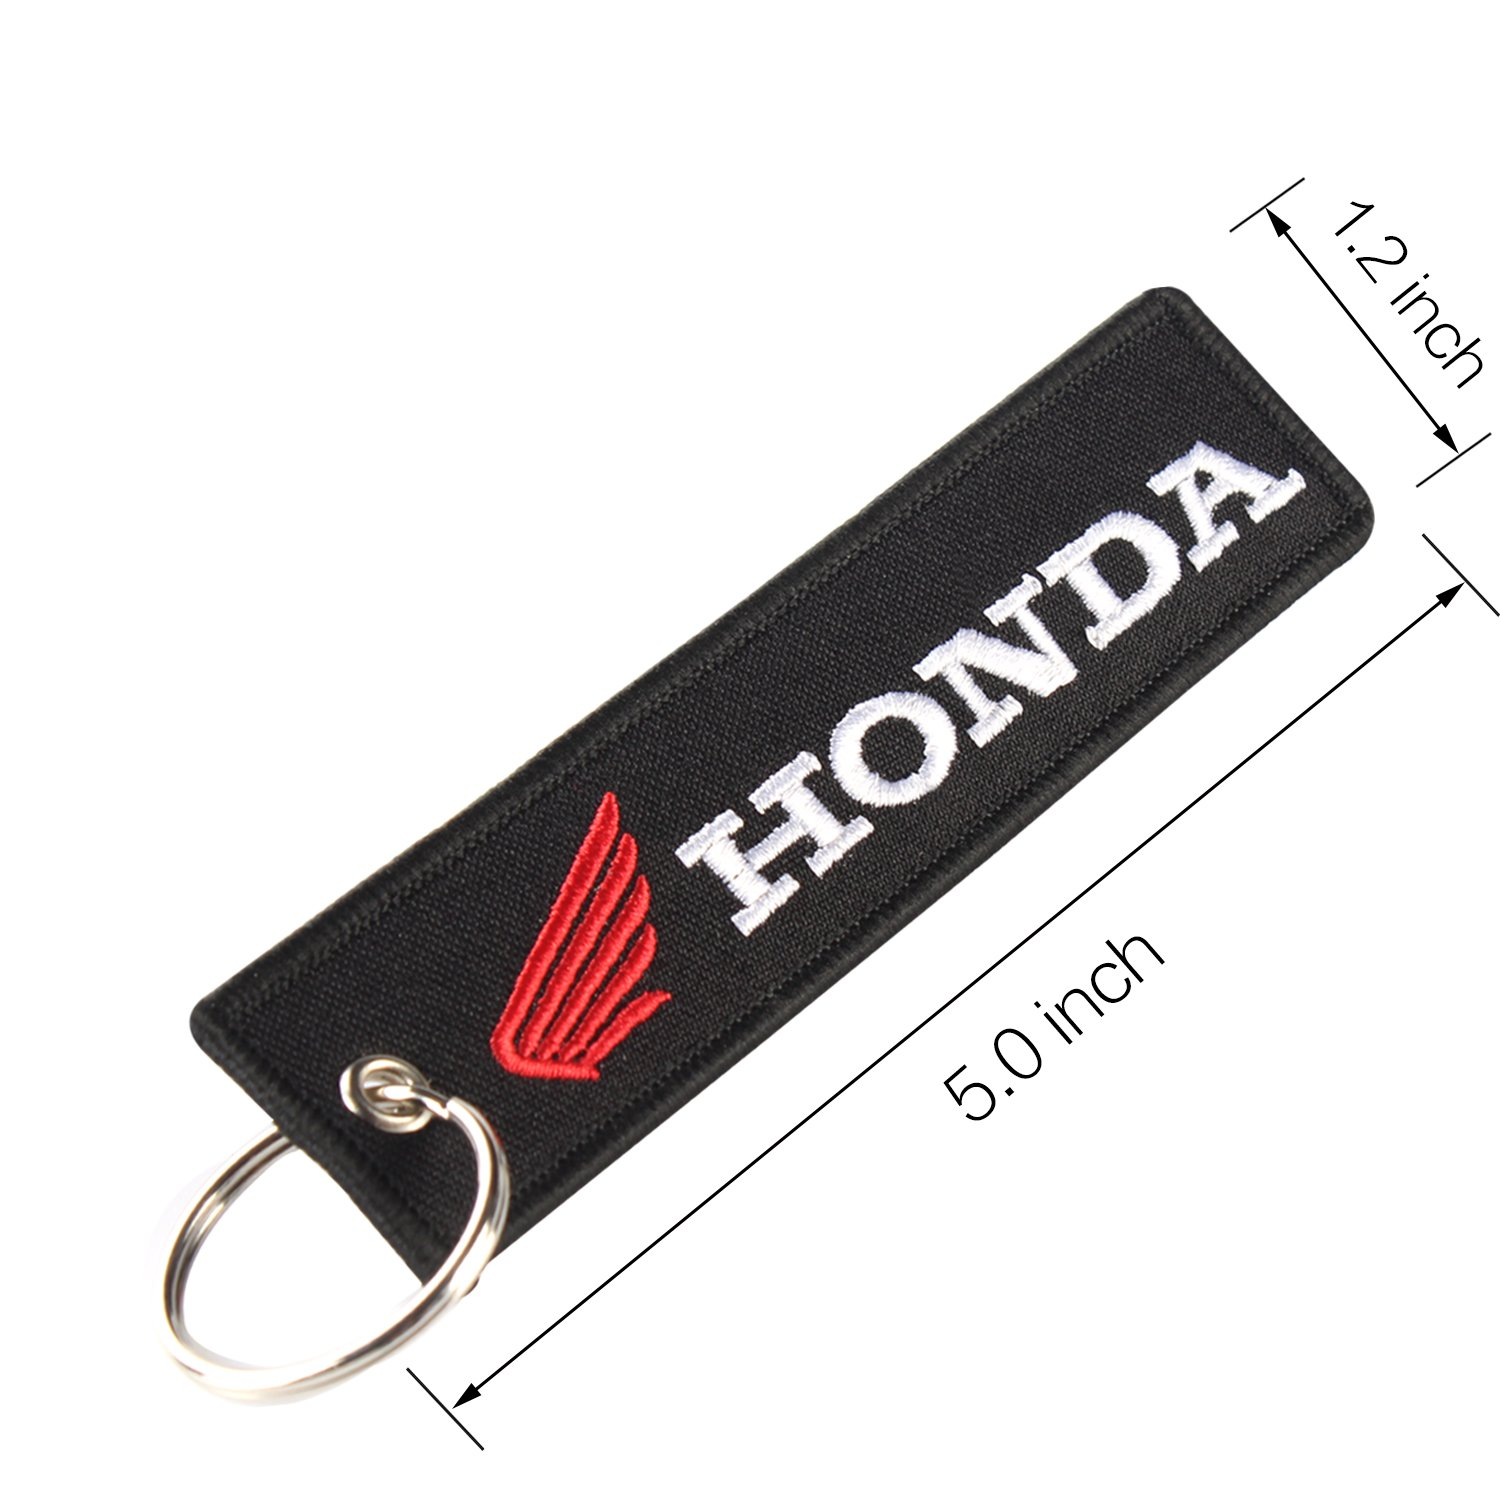 Amazon.com: golden tai keychain Double Sided embroidery Moto ...